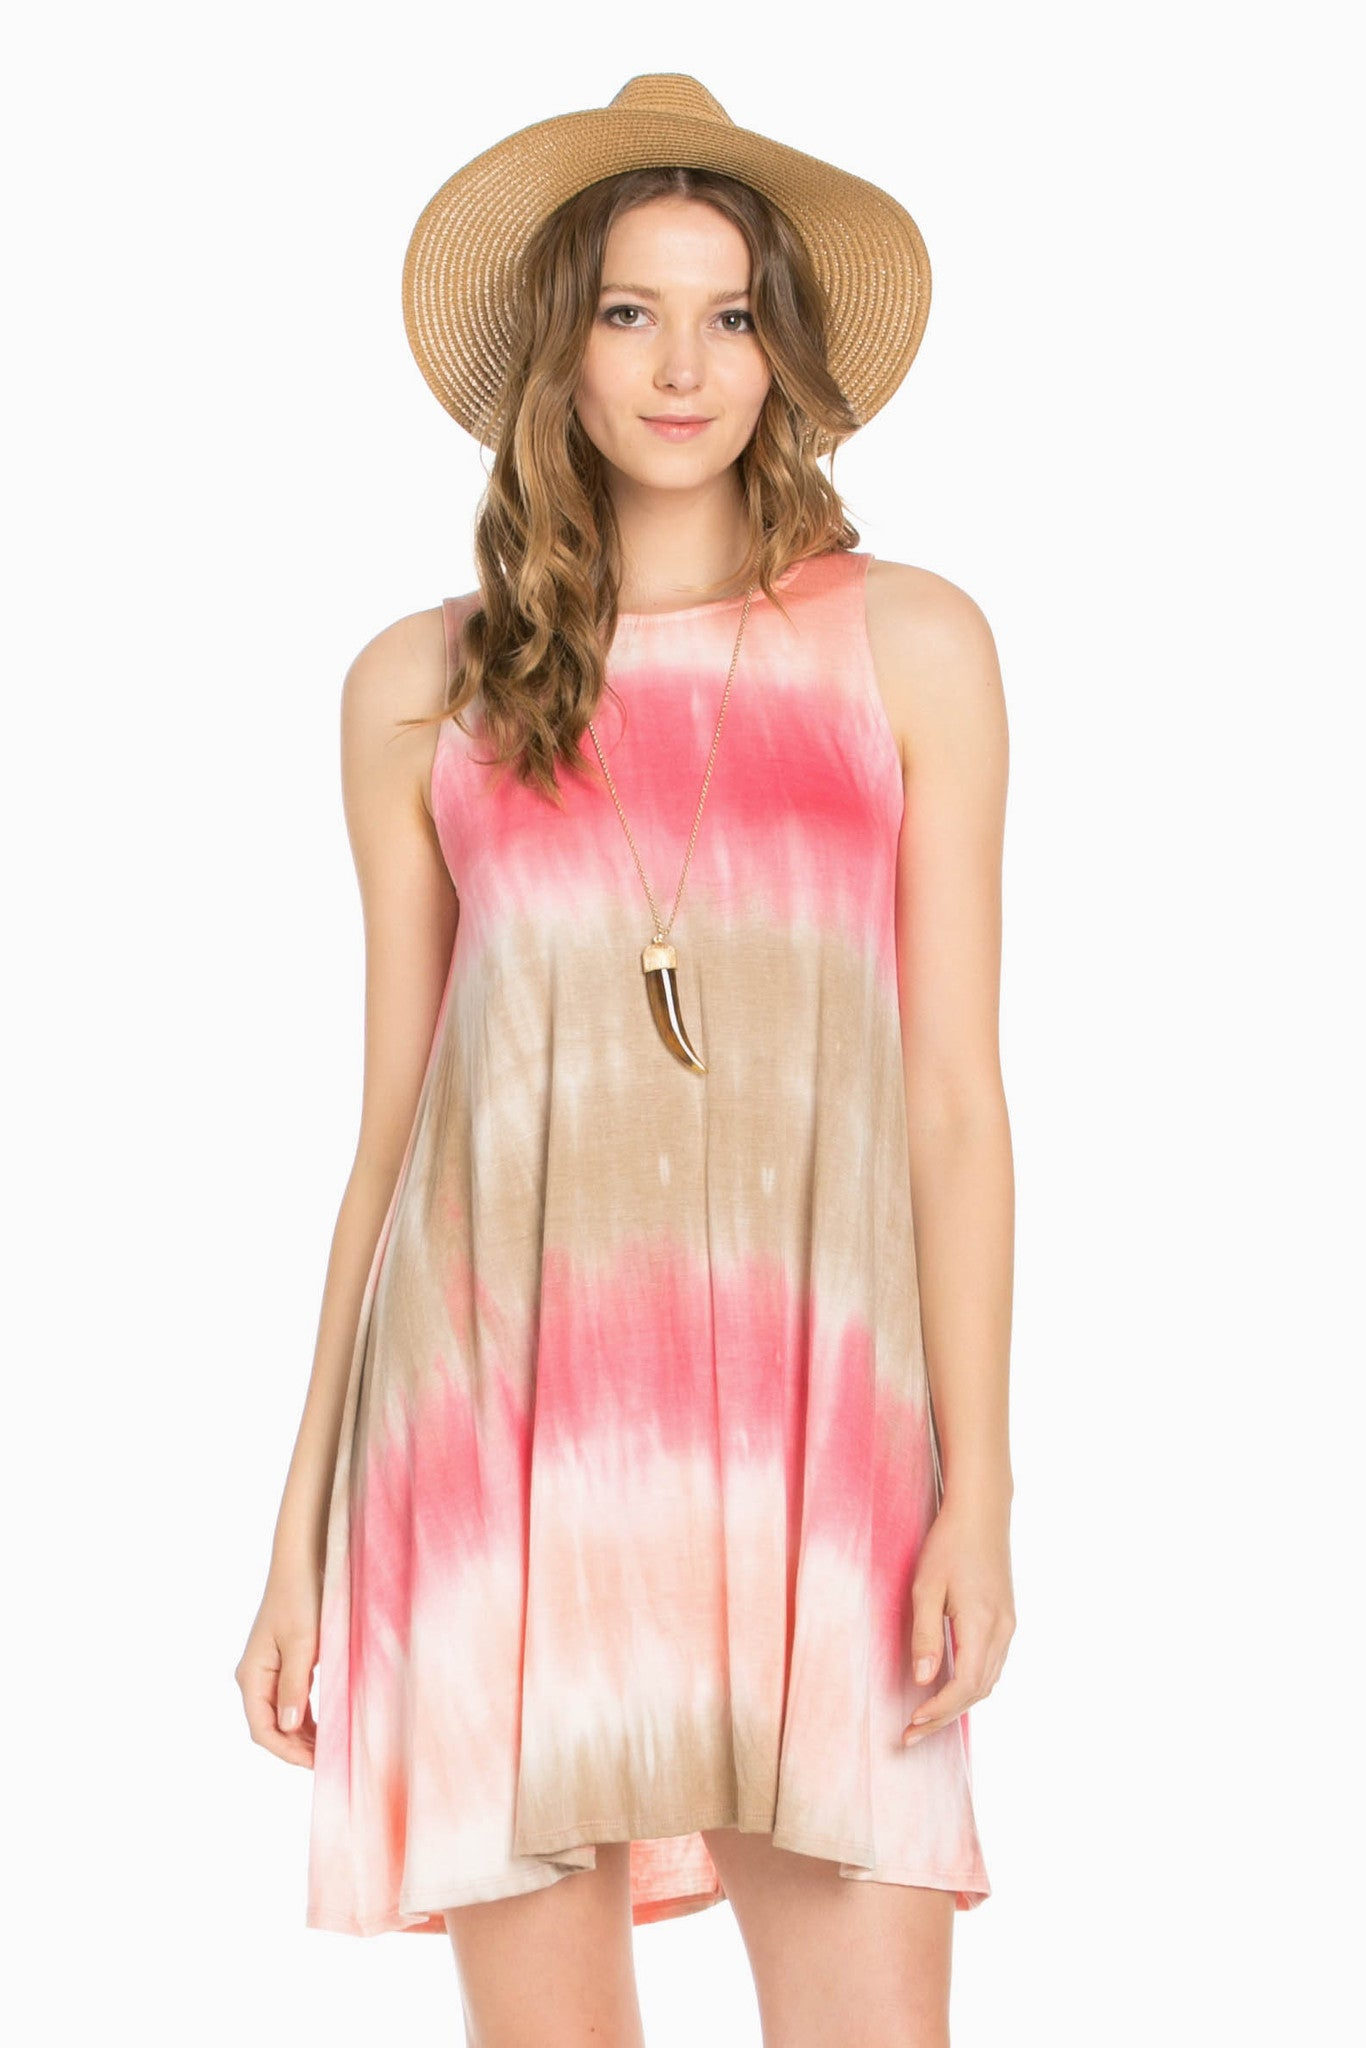 Striped Coral Tie Dye A-Line Dress - Dresses - My Yuccie - 1